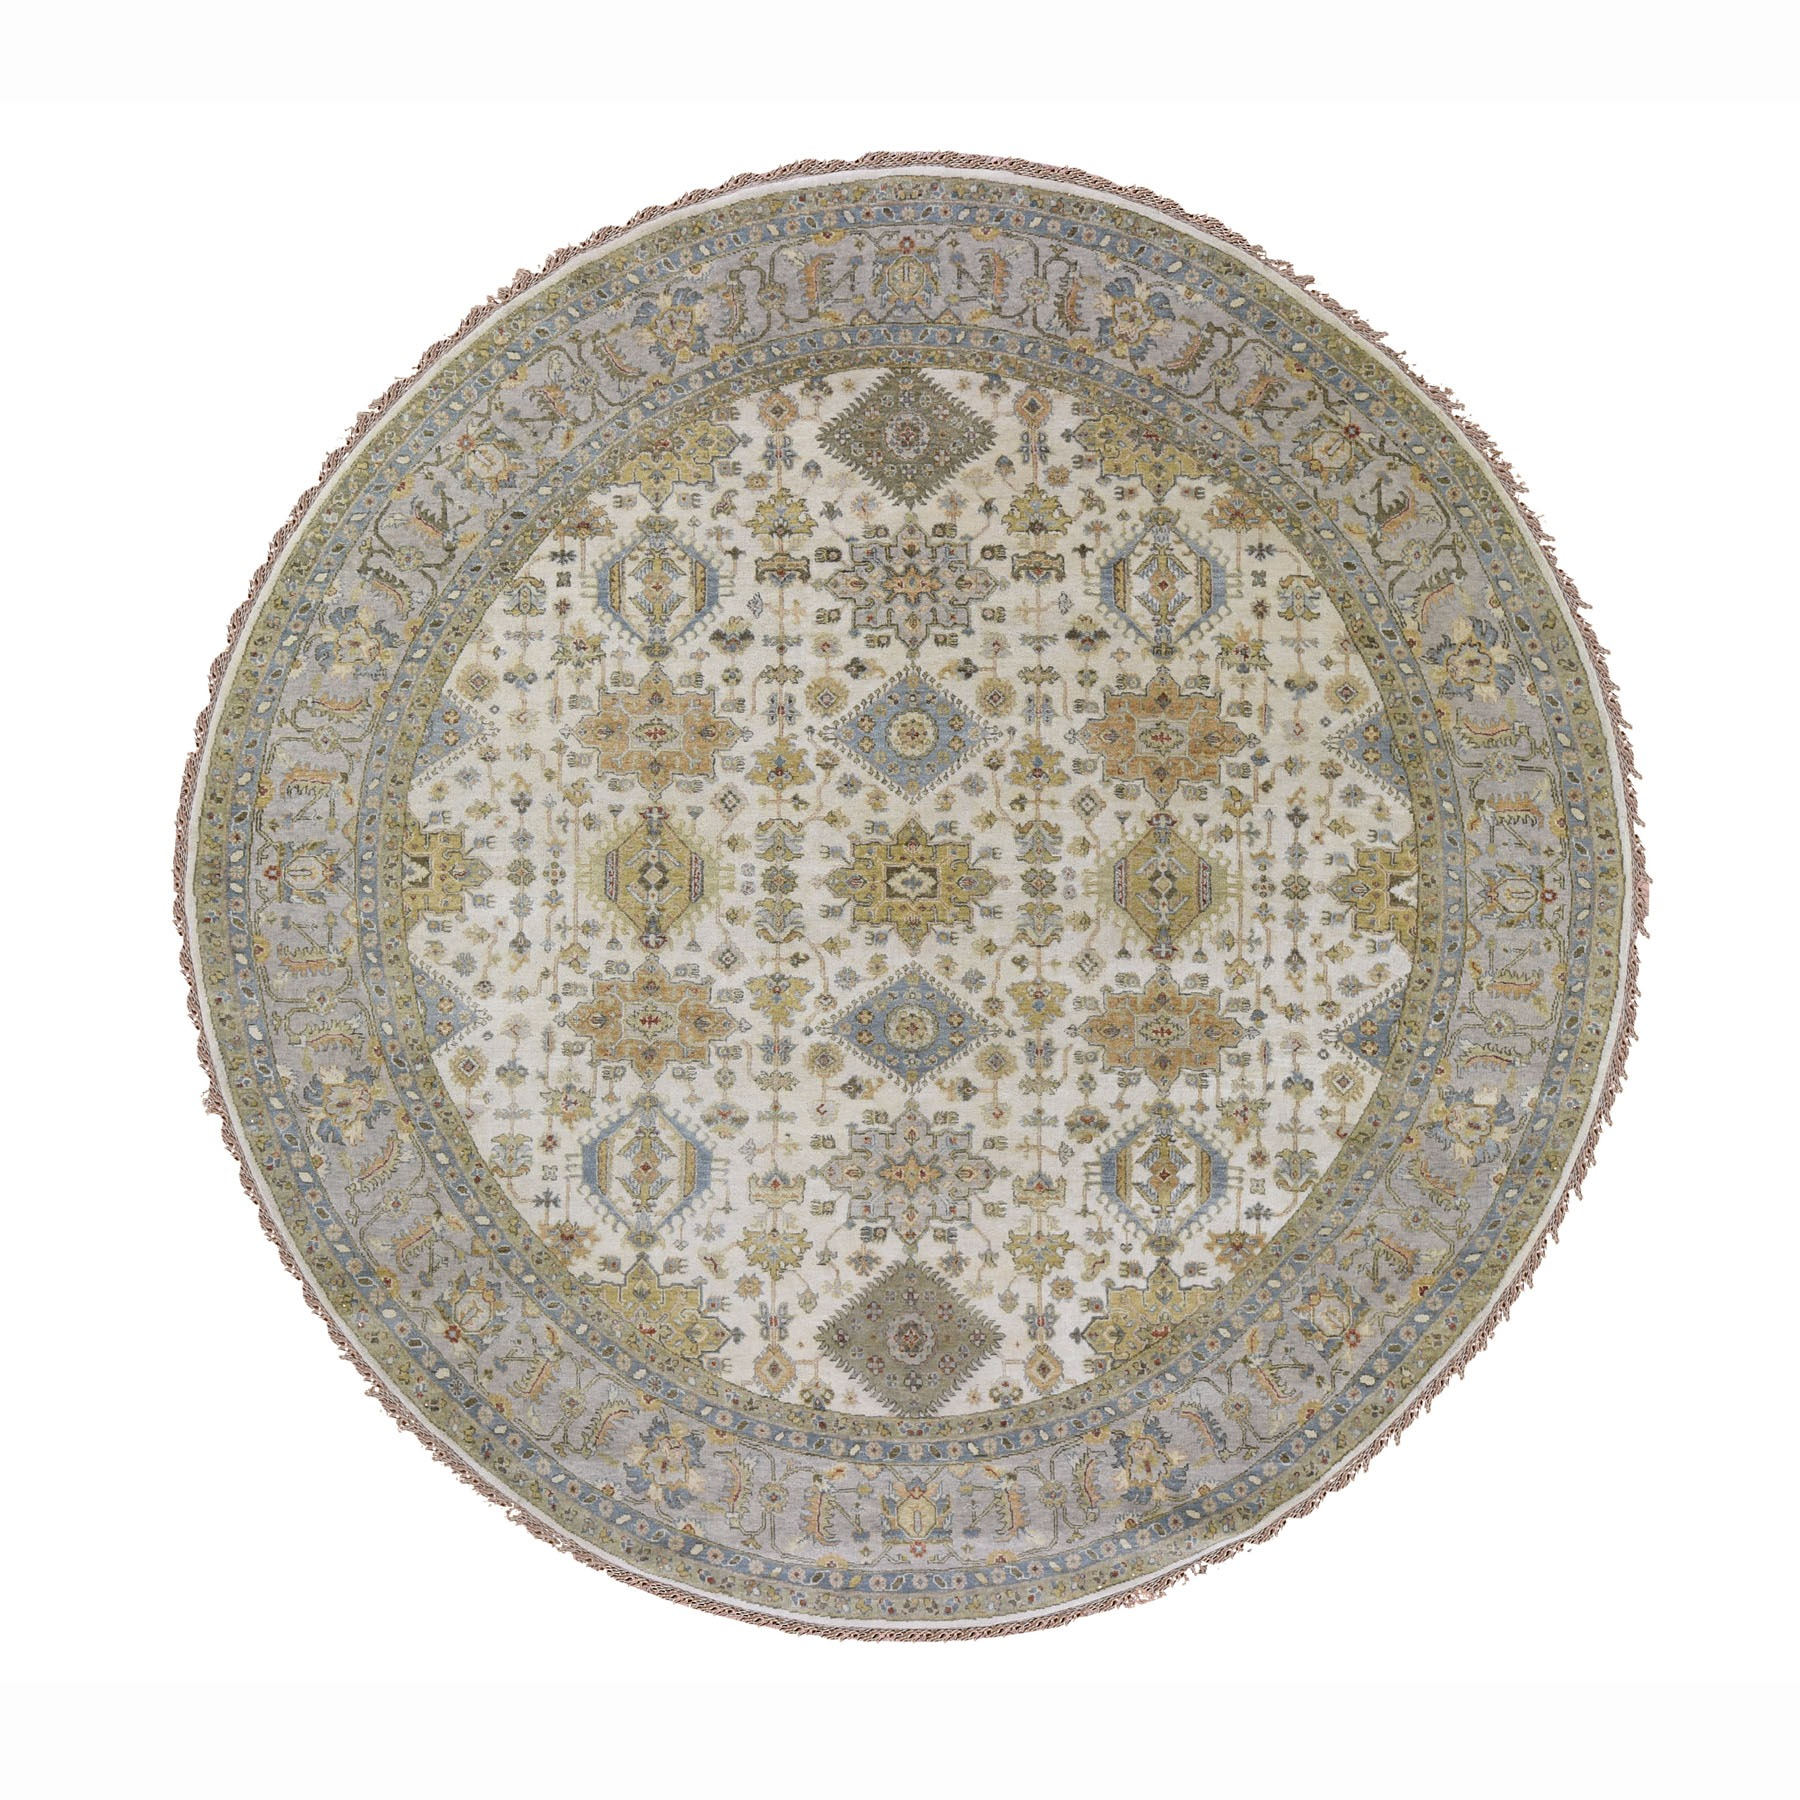 Serapi Heriz and Bakhshayesh Collection Hand Knotted Ivory Rug No: 0195742